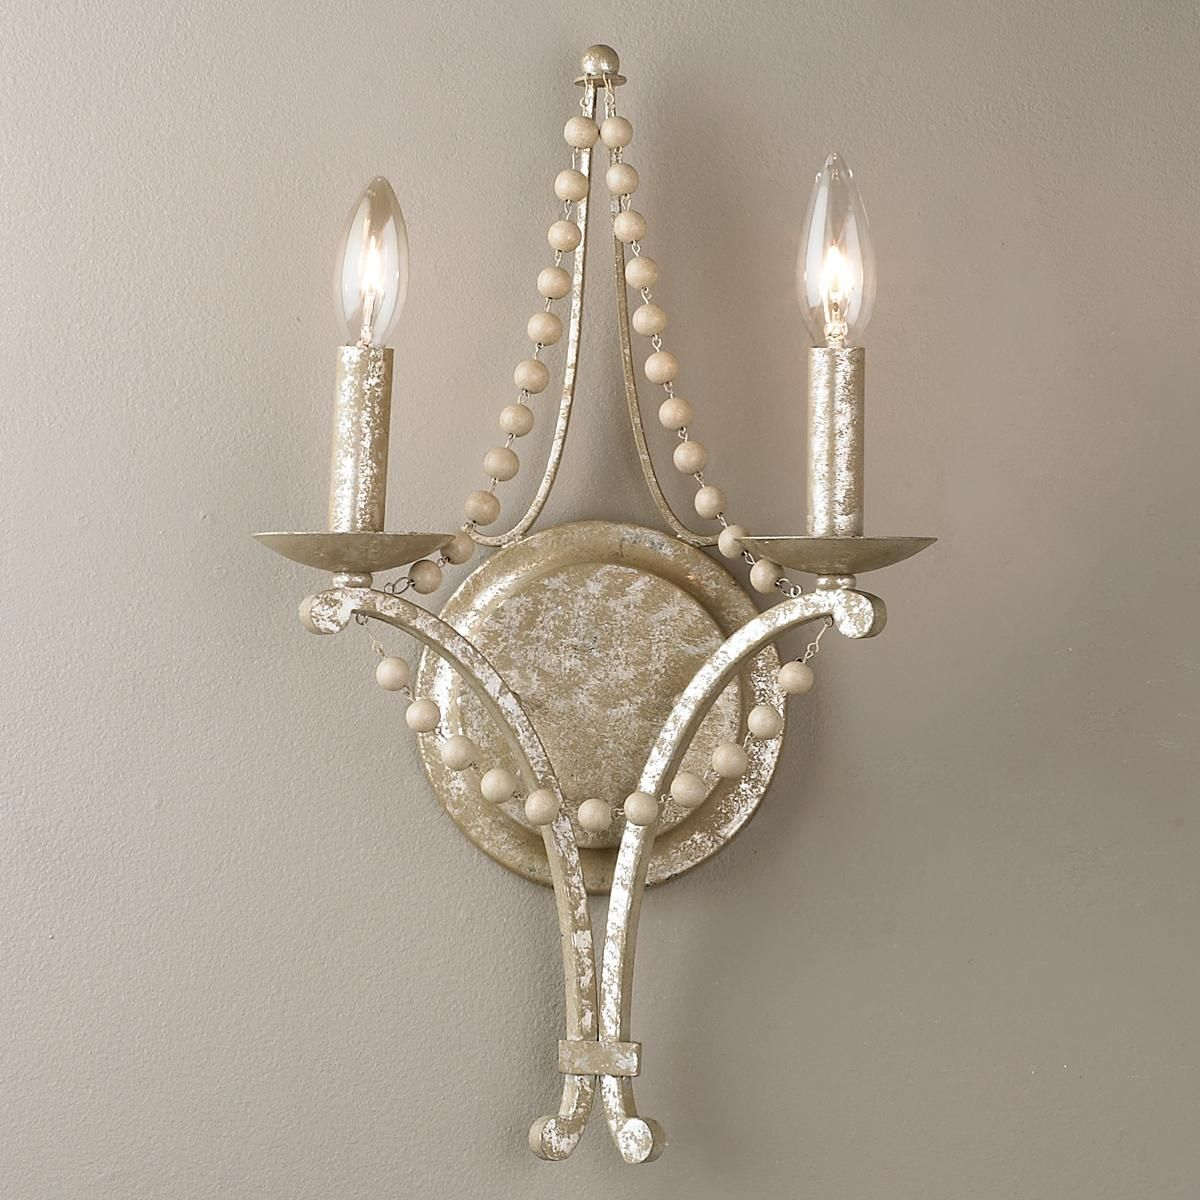 Beaded Elegance Wall Sconce 2 Light Wall Sconces Living Room Unique Wall Sconce Indoor Wall Sconces